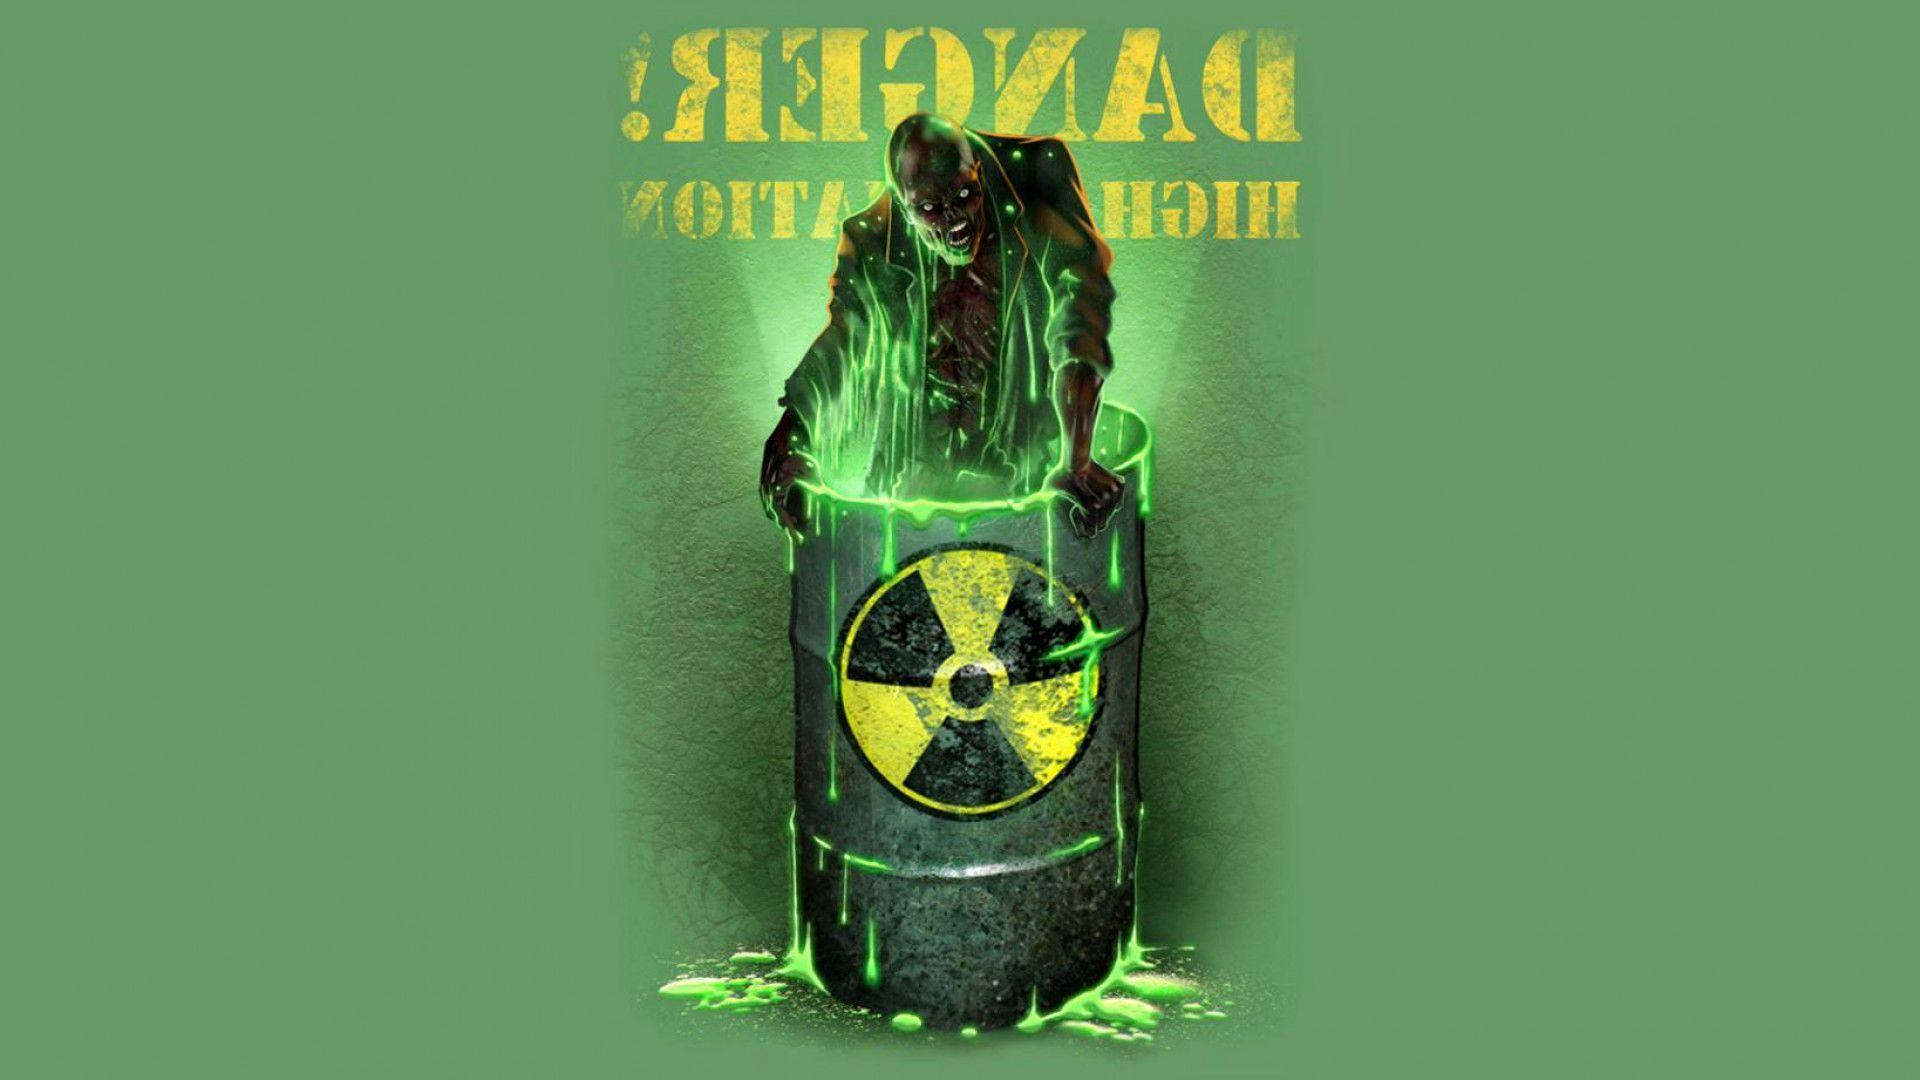 Nuclear waste drum radiation wallpaper